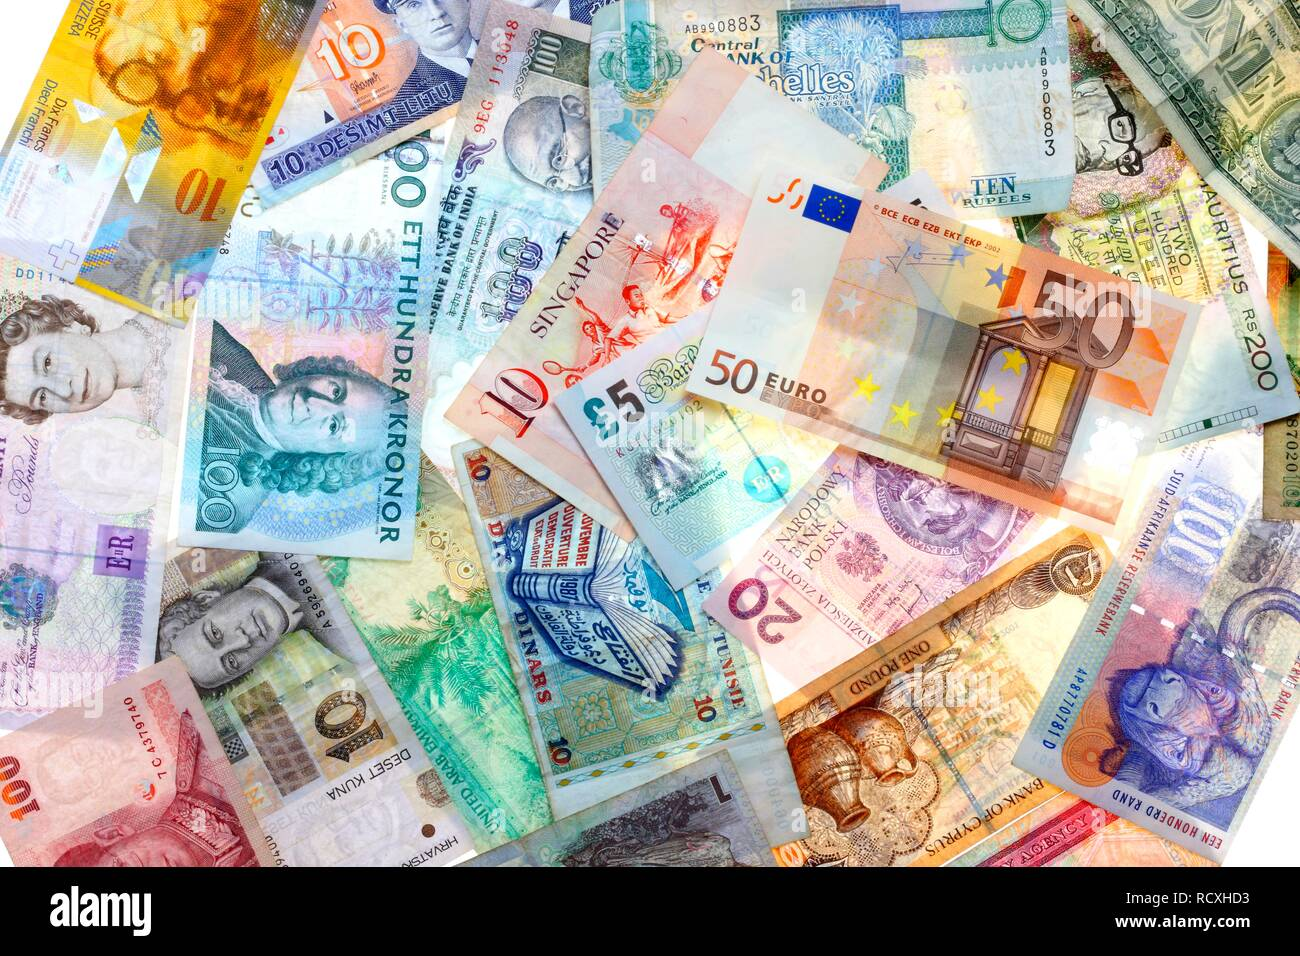 Banknotes, different currencies from around the world, foreign exchange - Stock Image